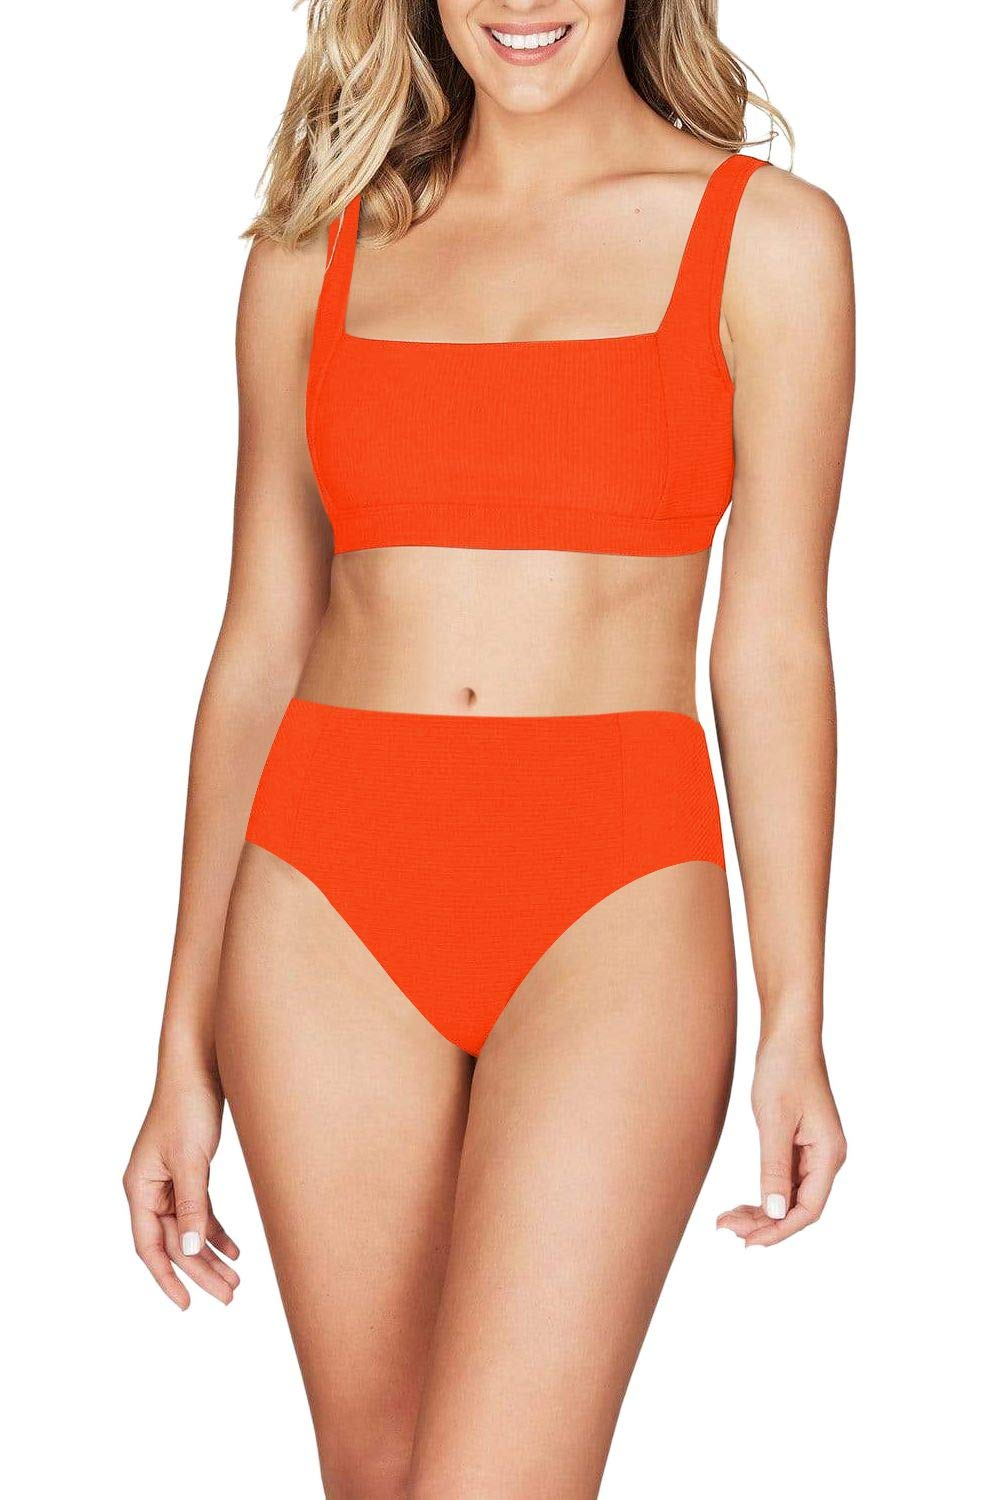 Viottiset Women's High Waisted Ribbed Square Neck Cheeky Bikini 2 Piece Swimsuit Sexy Wide Strap